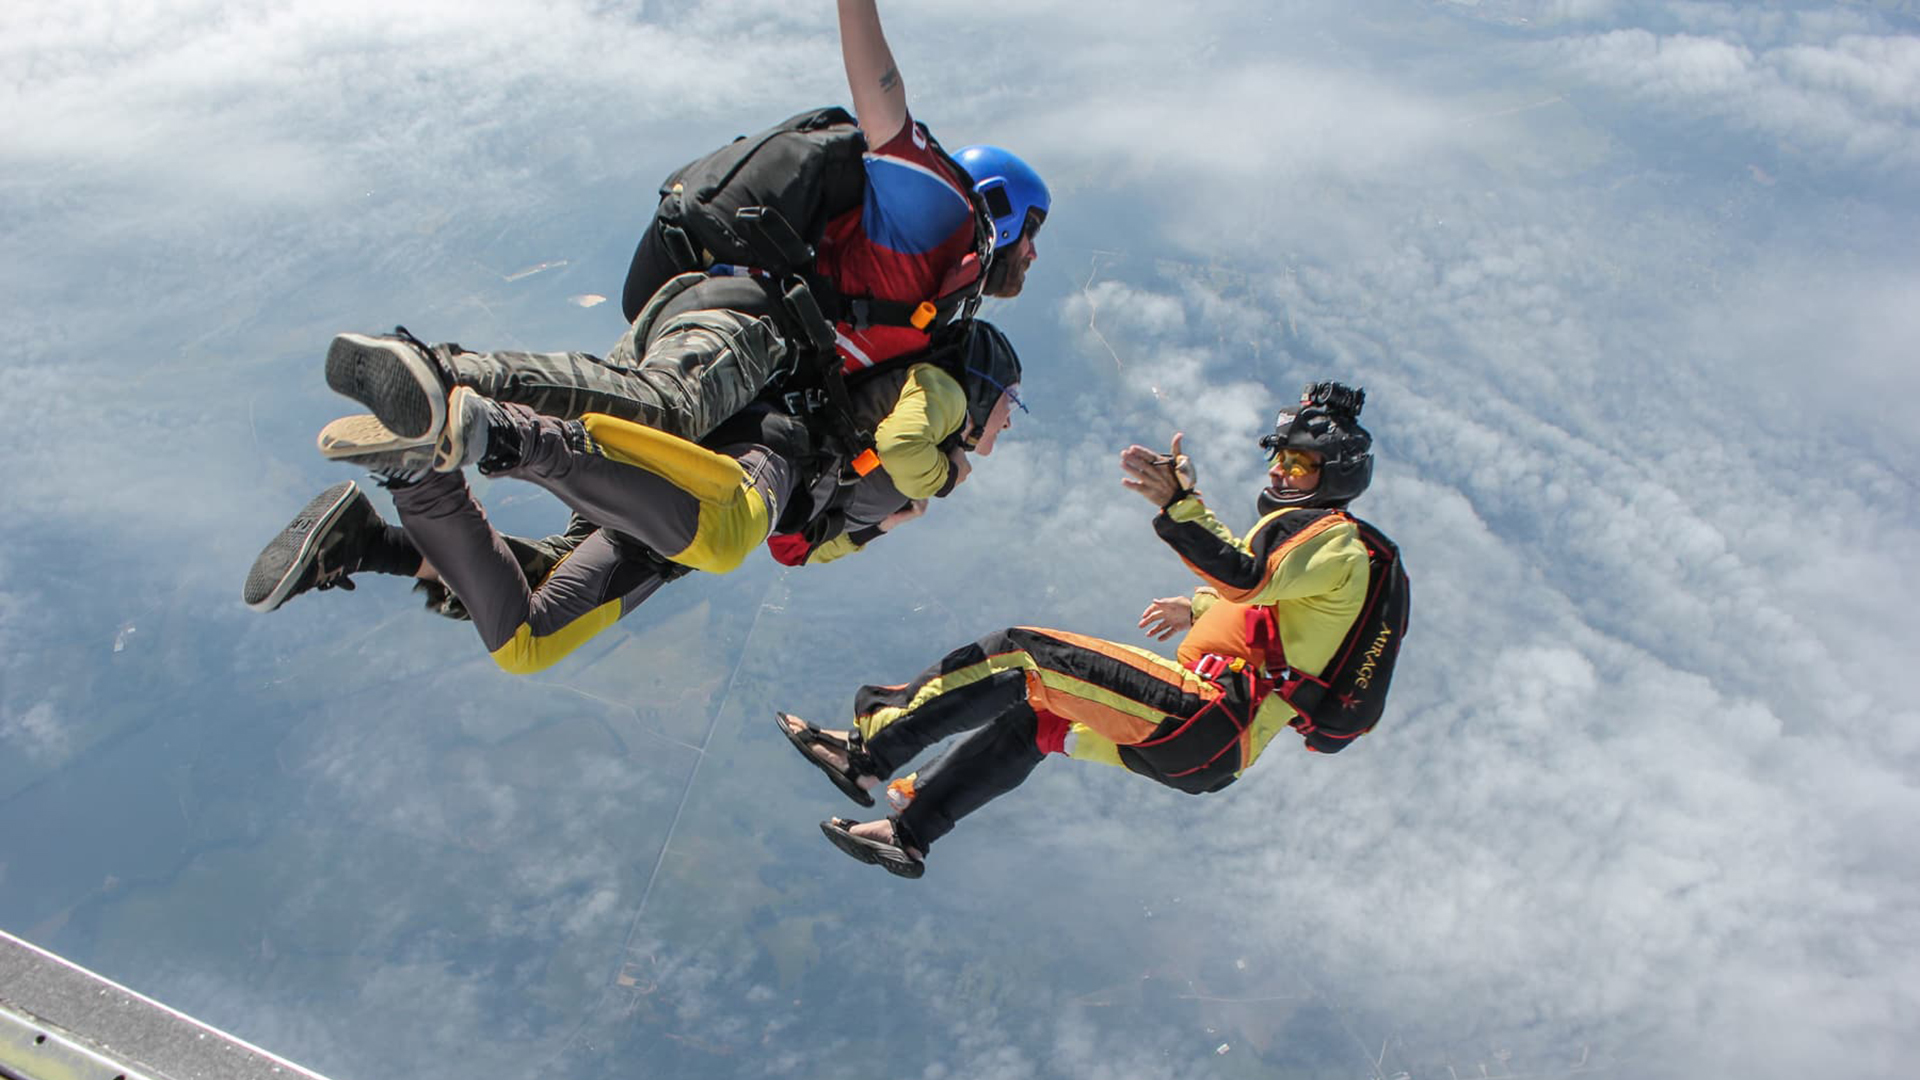 Annual seminar for specialists of the parachute industry in Ukraine - Skydive Academy